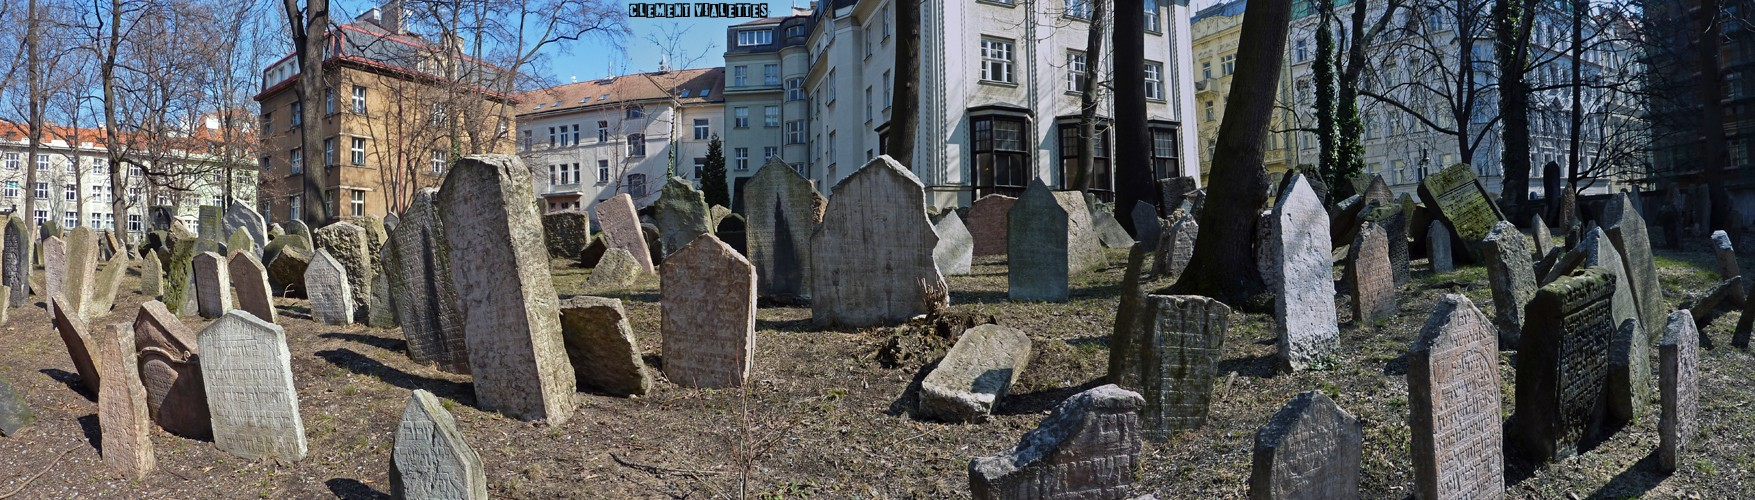 2010-03-prague-panoramique-cimetiere-juif-01.jpg